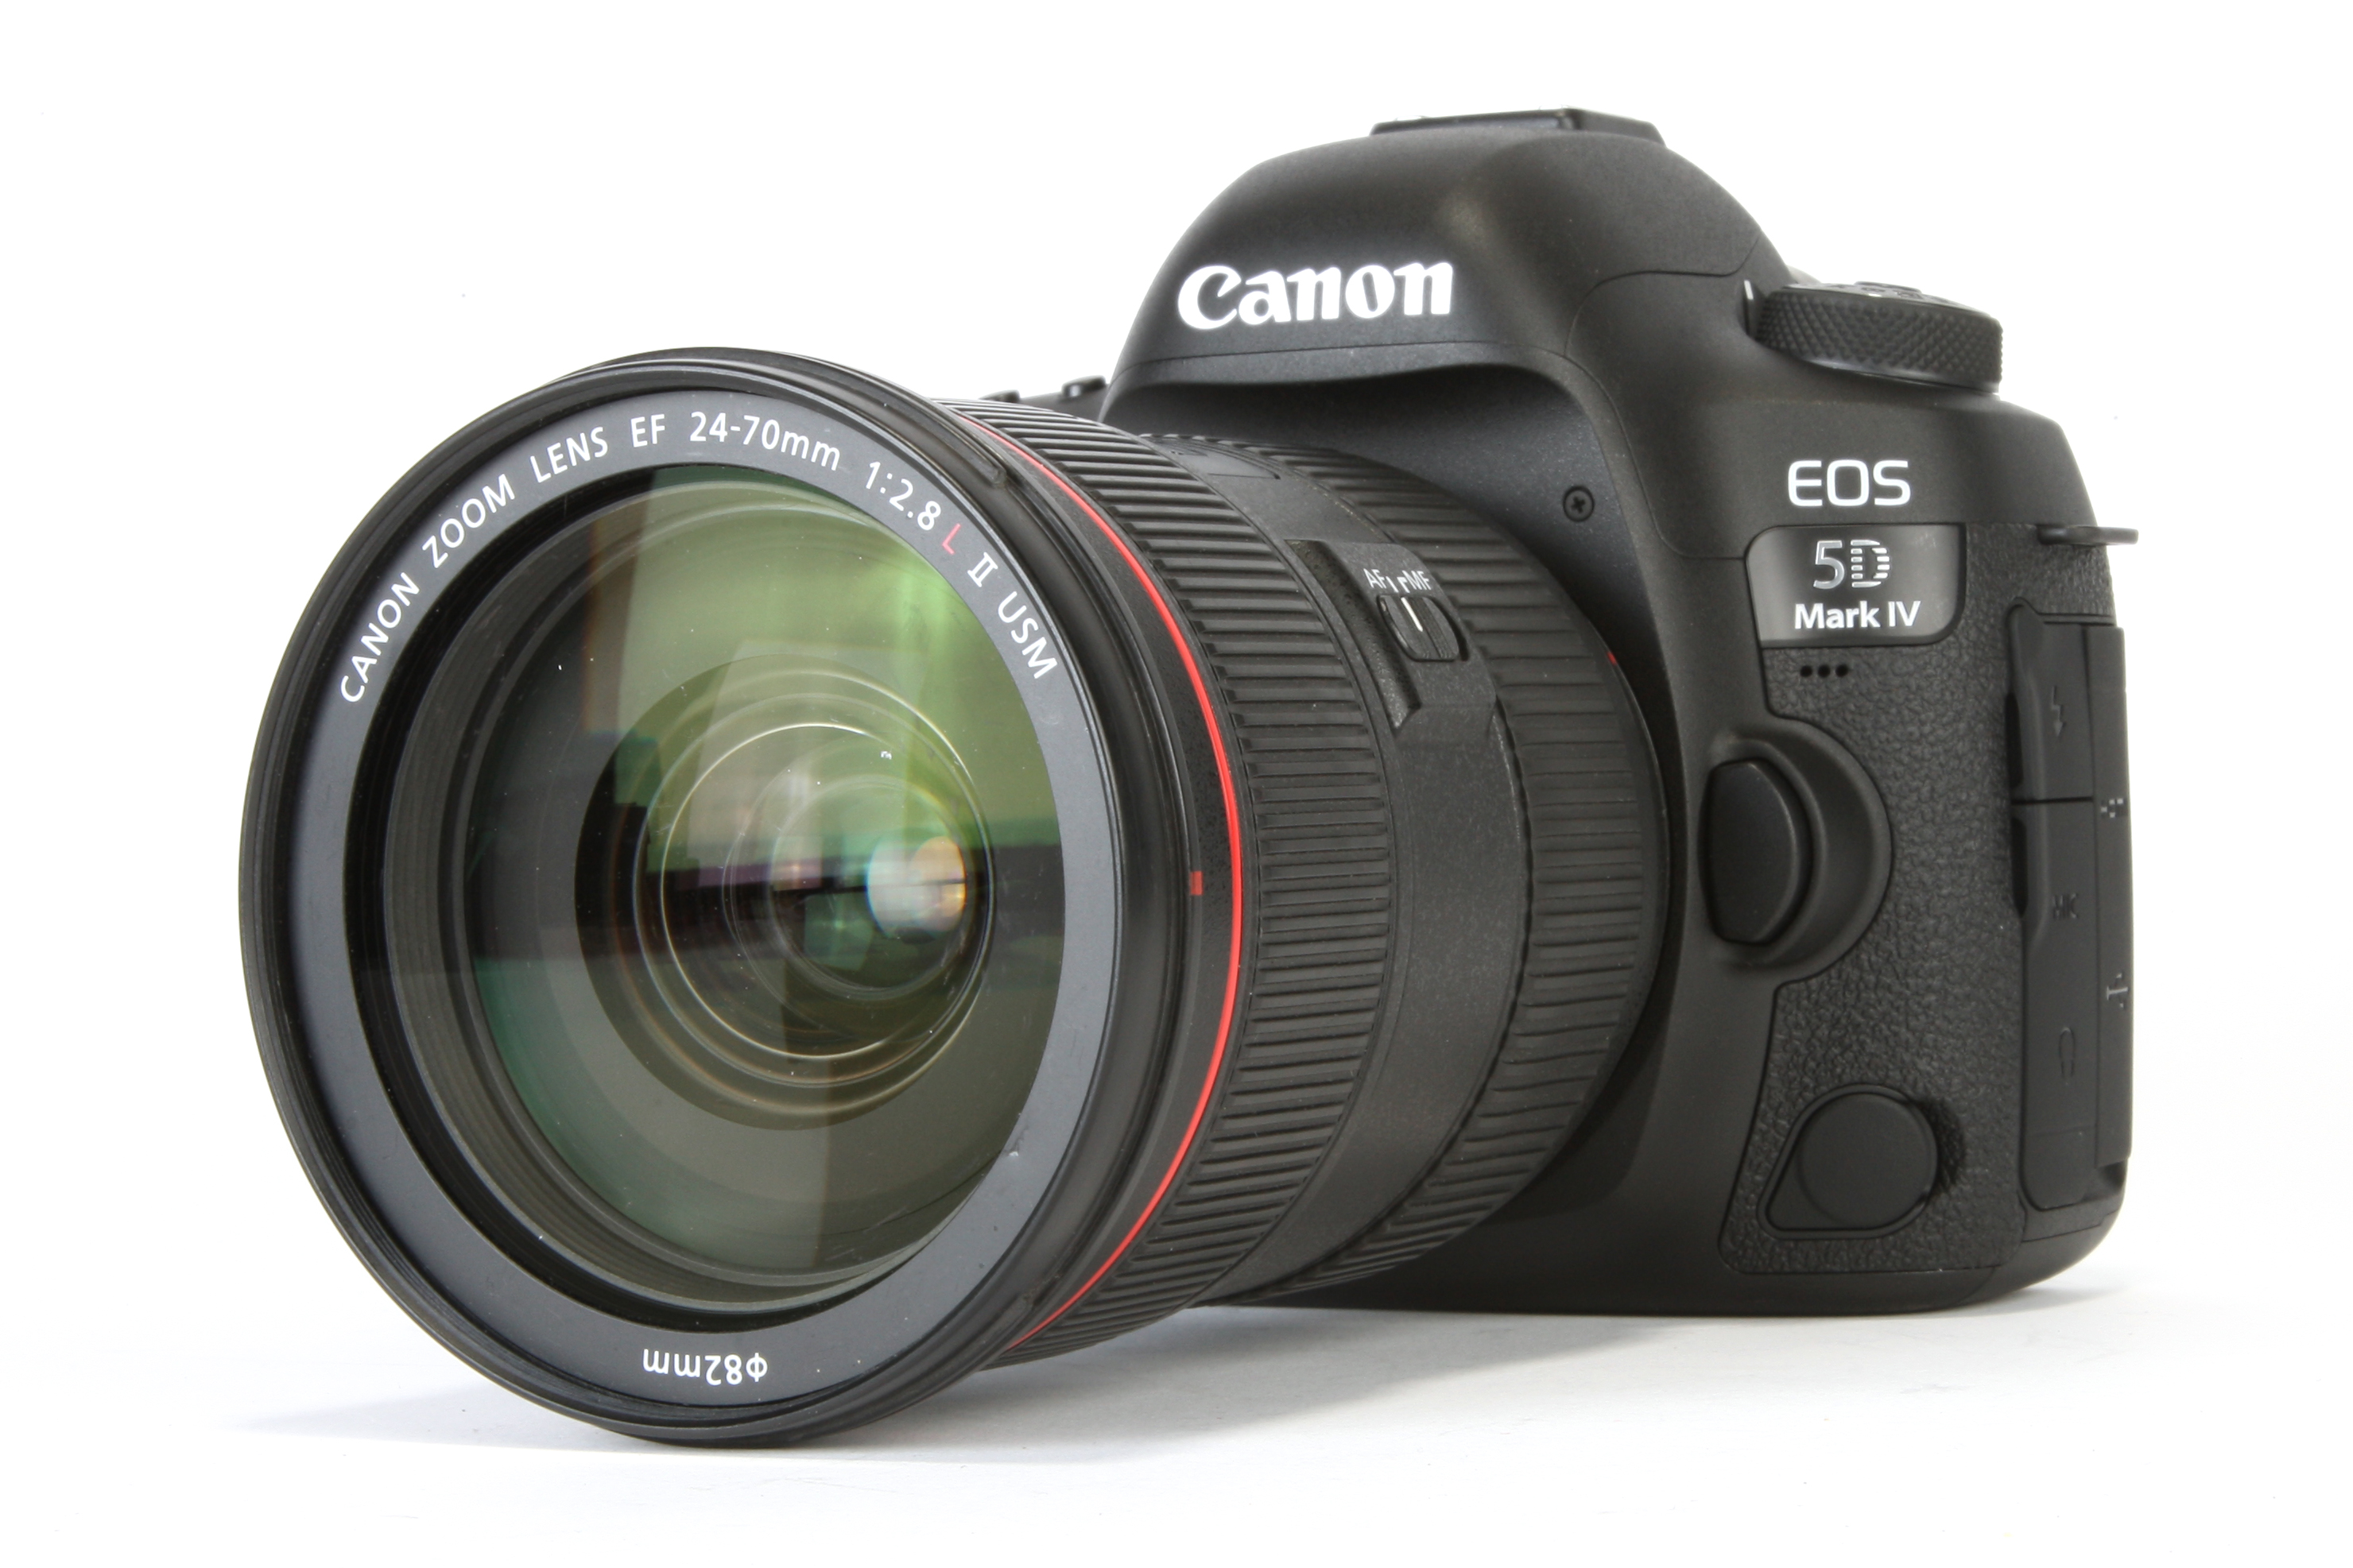 canon eos 5d mark iv review amateur photographer. Black Bedroom Furniture Sets. Home Design Ideas